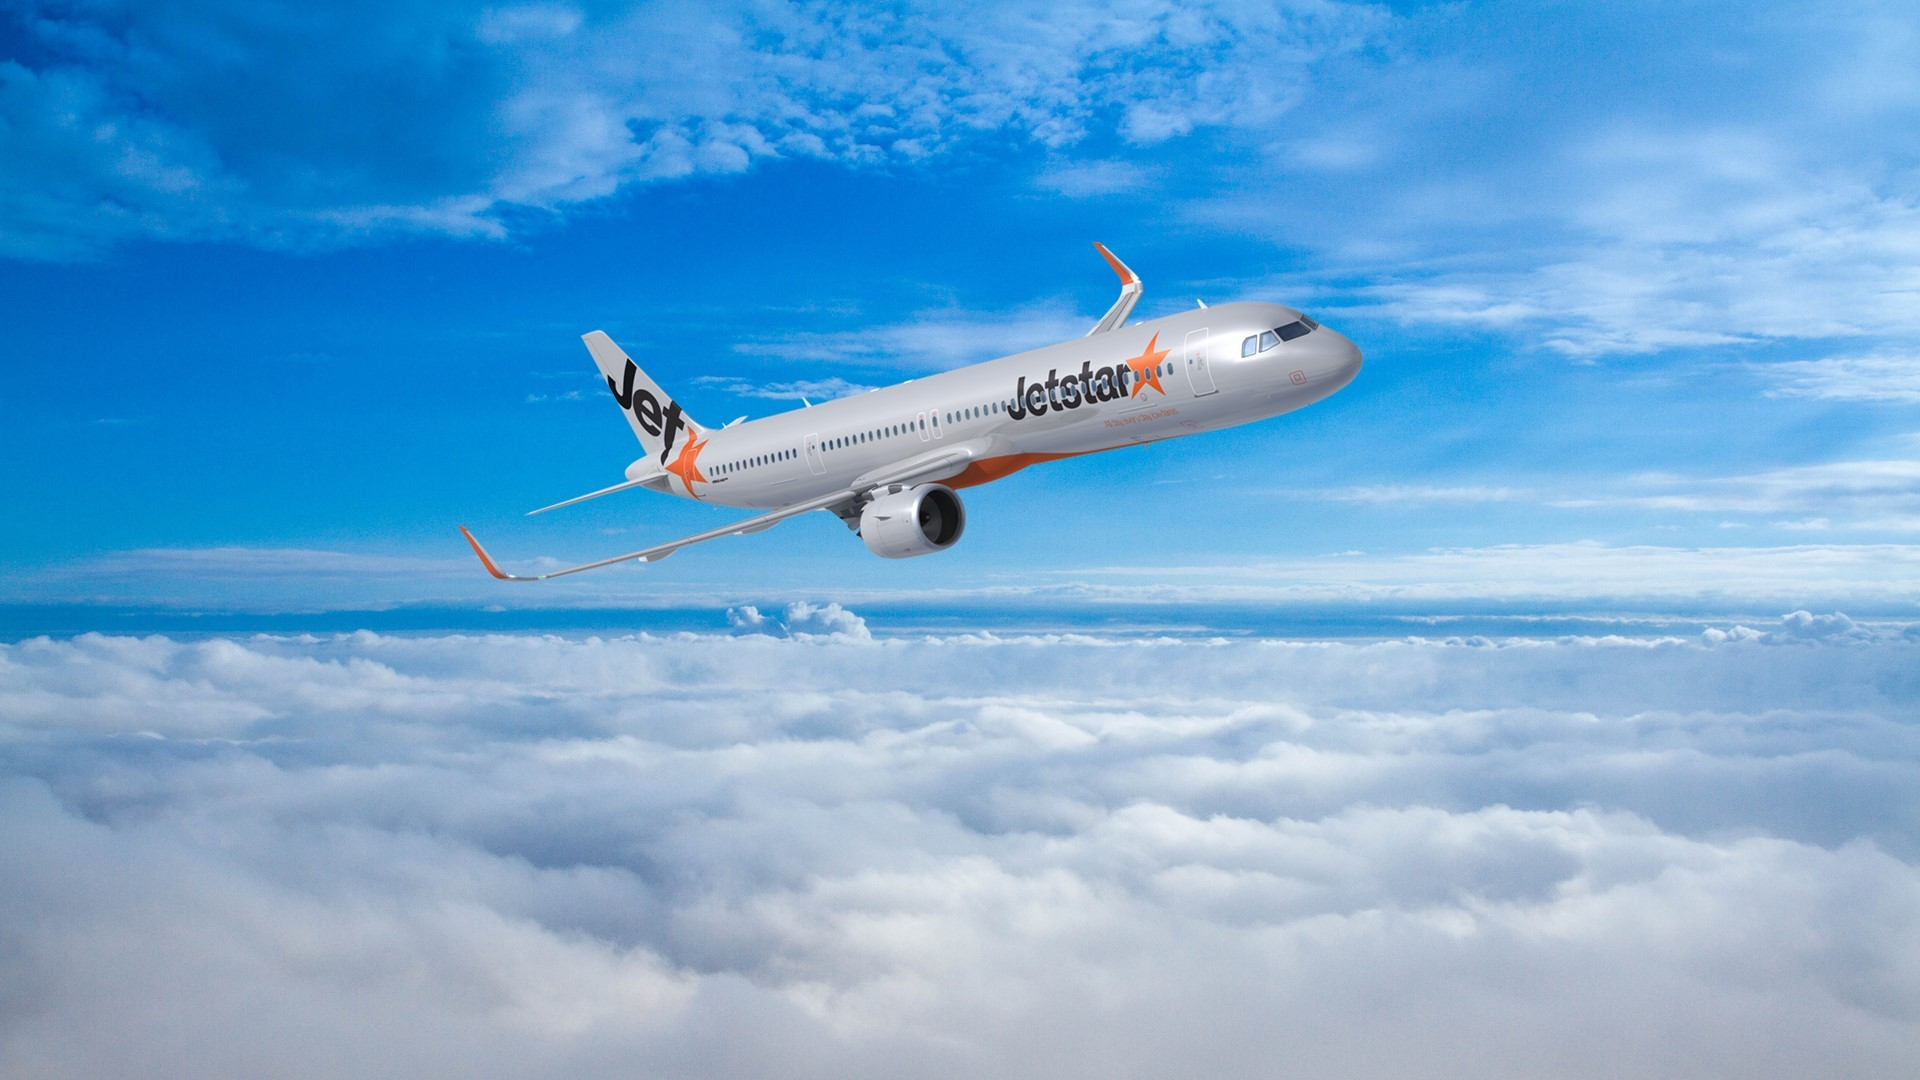 Jetstar Introduces Its New Airbus A321neo Lr